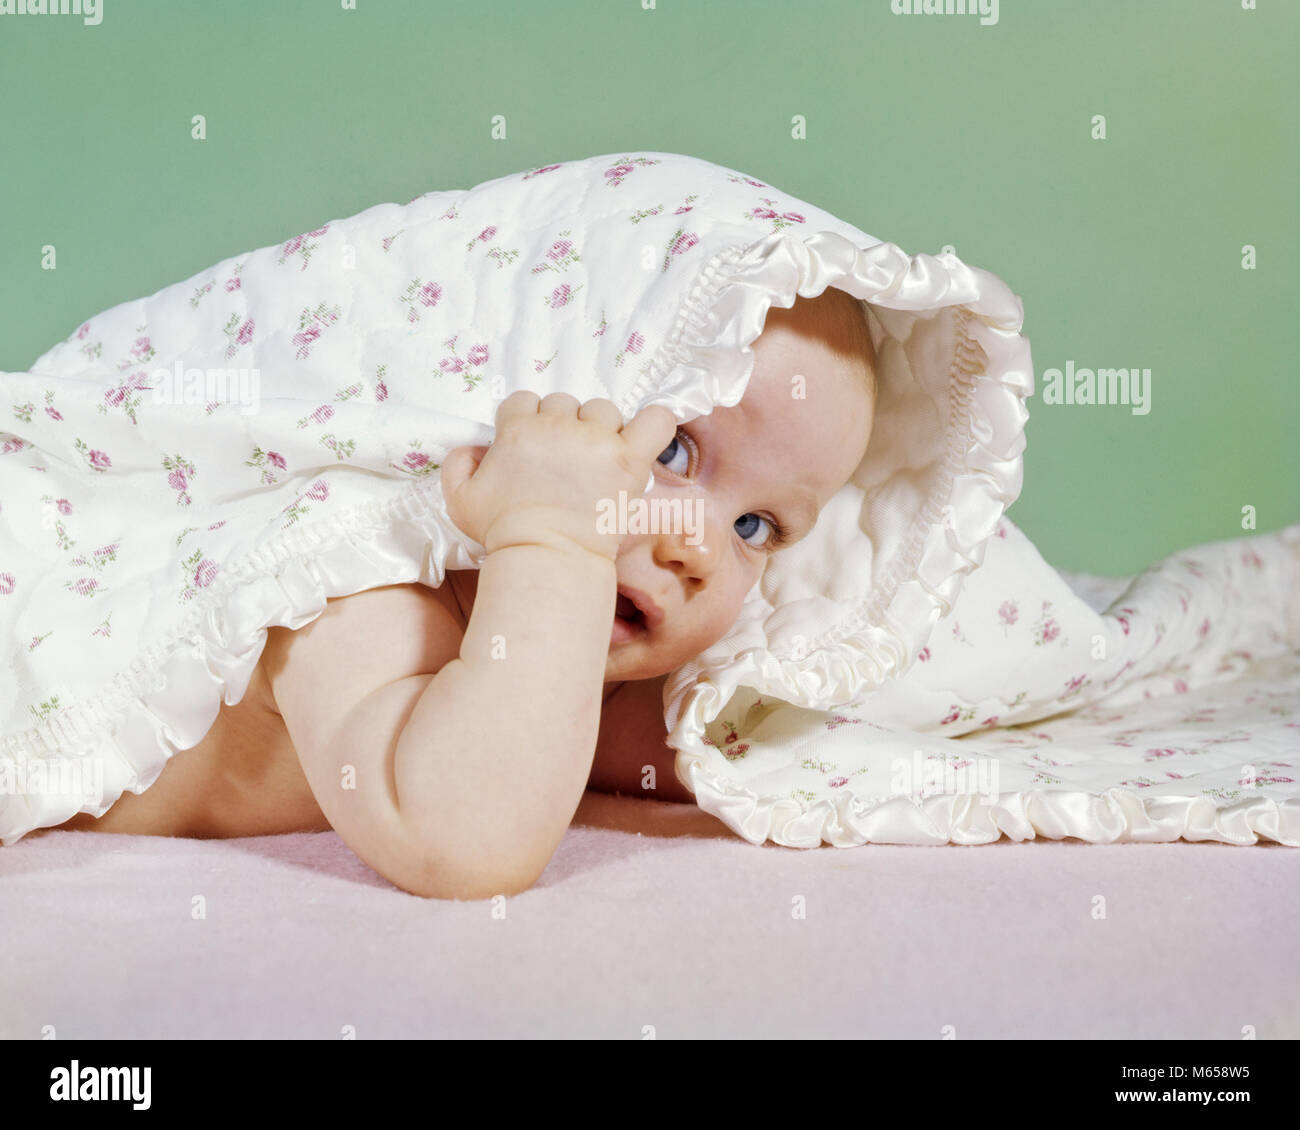 1960s BABY HIDING UNDER BLANKET LOOKING OUT LOOKING AT CAMERA - kb3371 HAR001 HARS HEAD AND SHOULDERS DISCOVERY - Stock Image